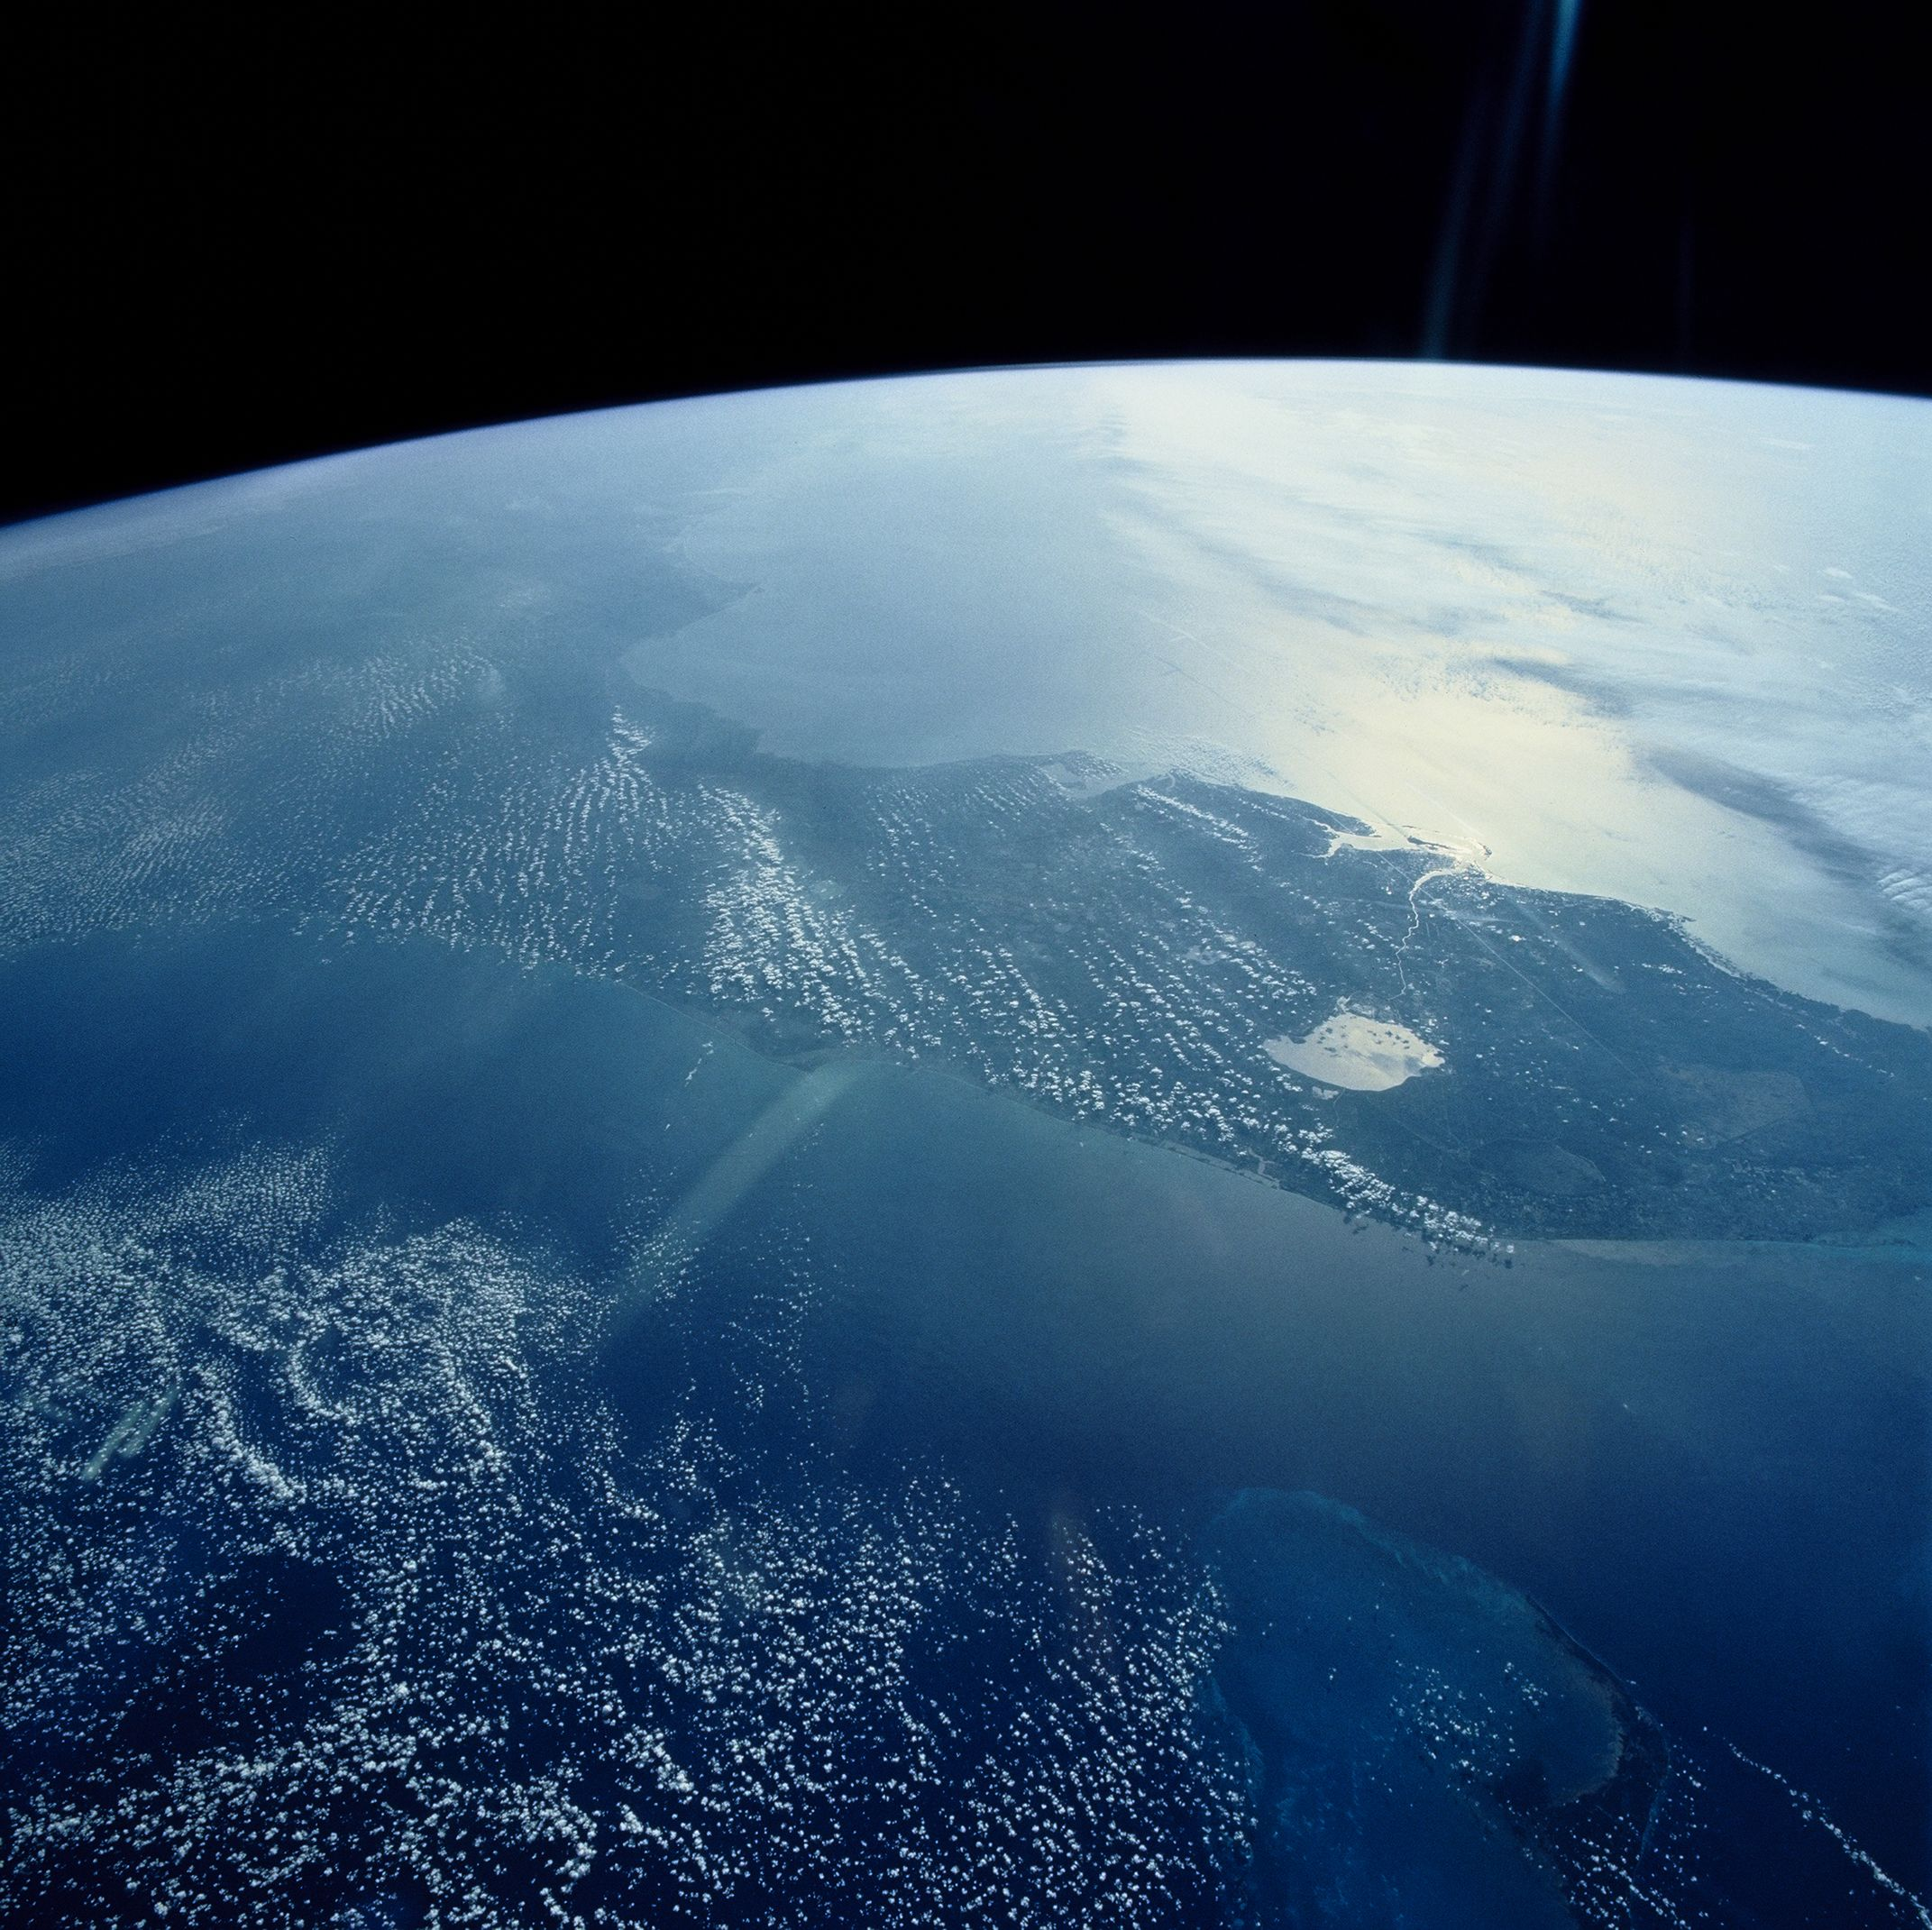 view of planet earth - photo #33